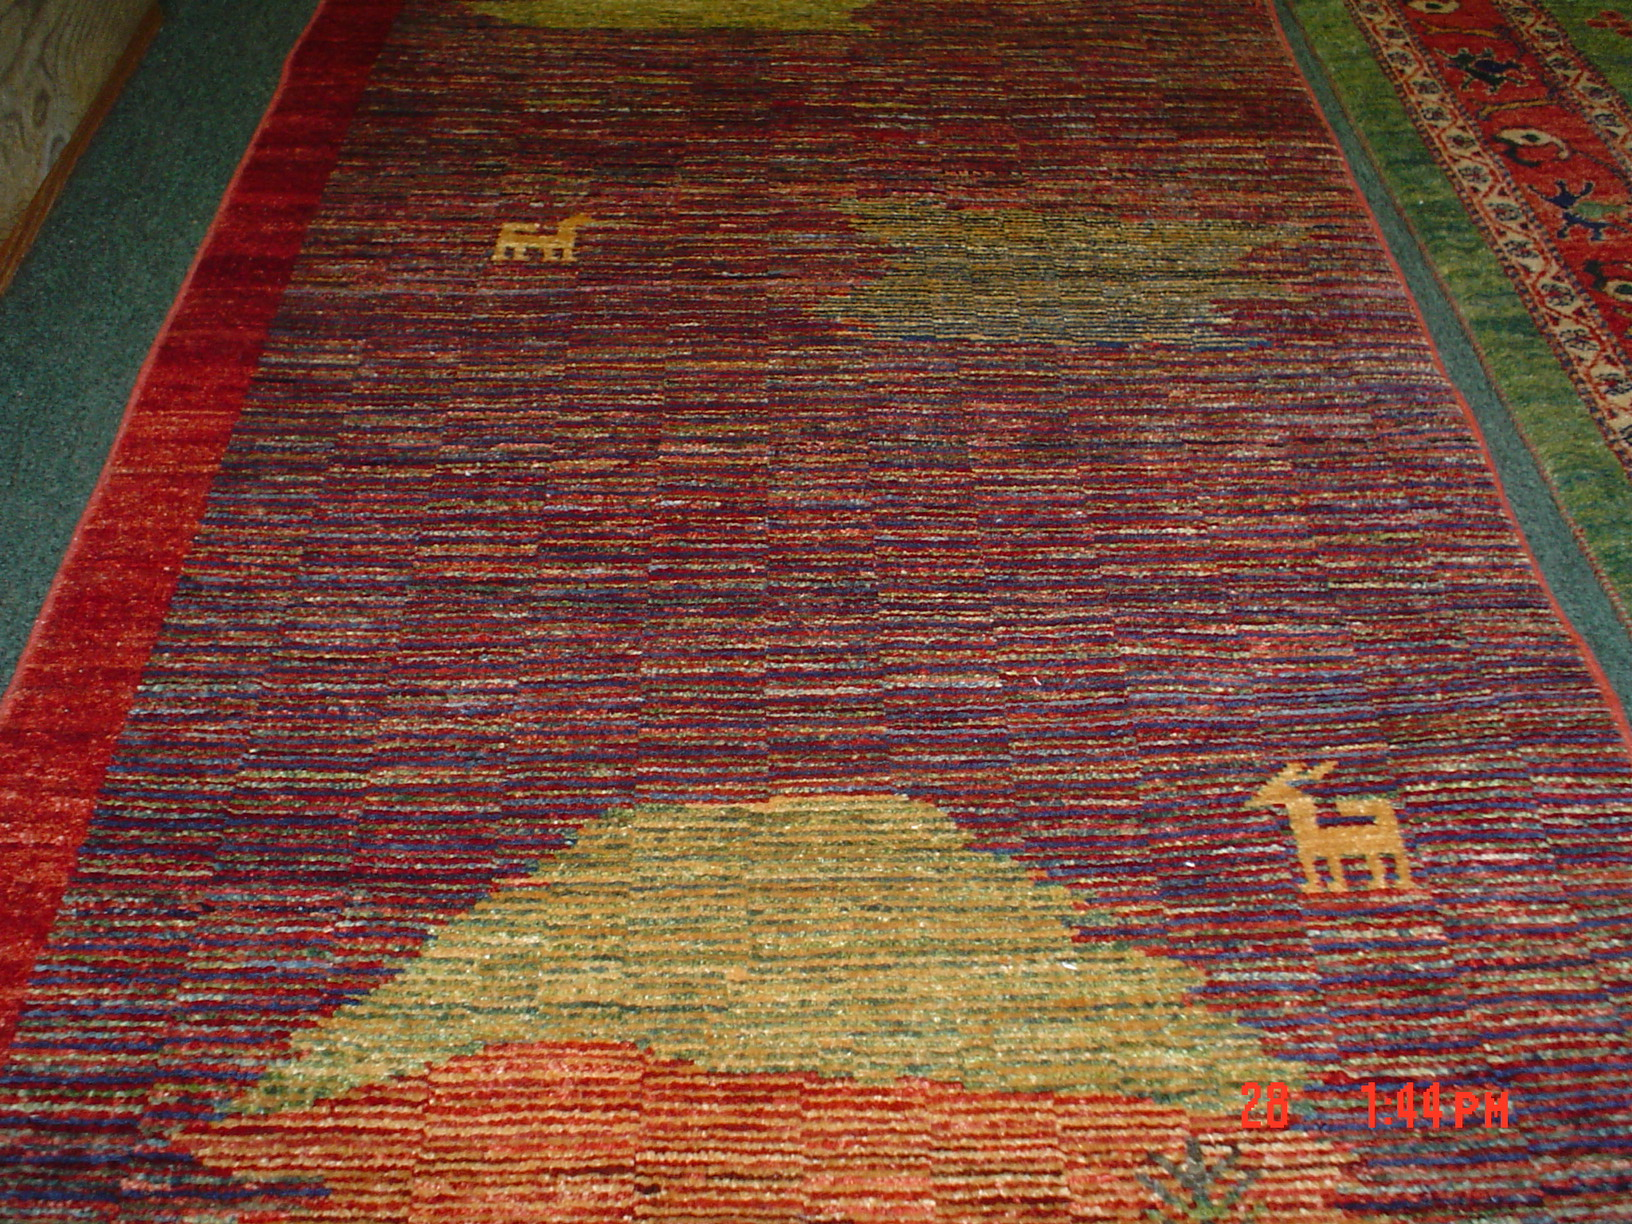 "#14b) Modern Afghan runner. 2'6 x 8"", woven with vegetable dyes and hand spun wool."